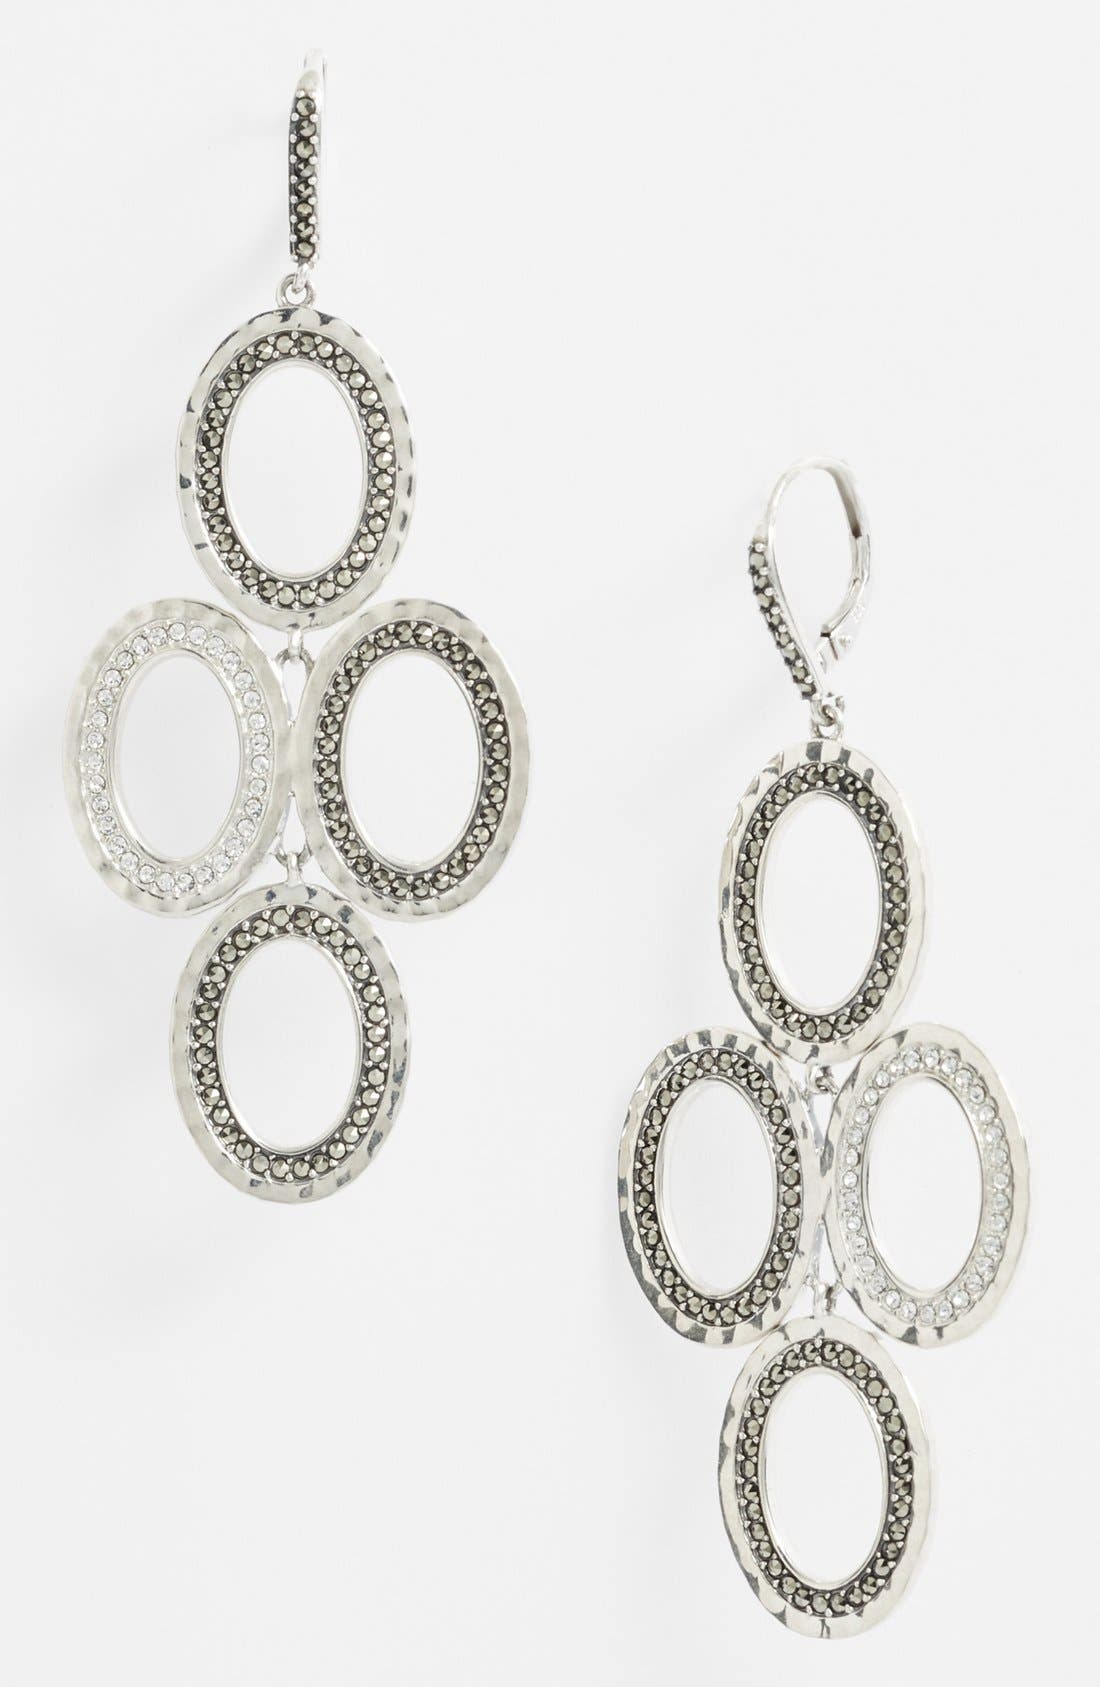 Main Image - Judith Jack 'Halo' Oval Chandelier Earrings